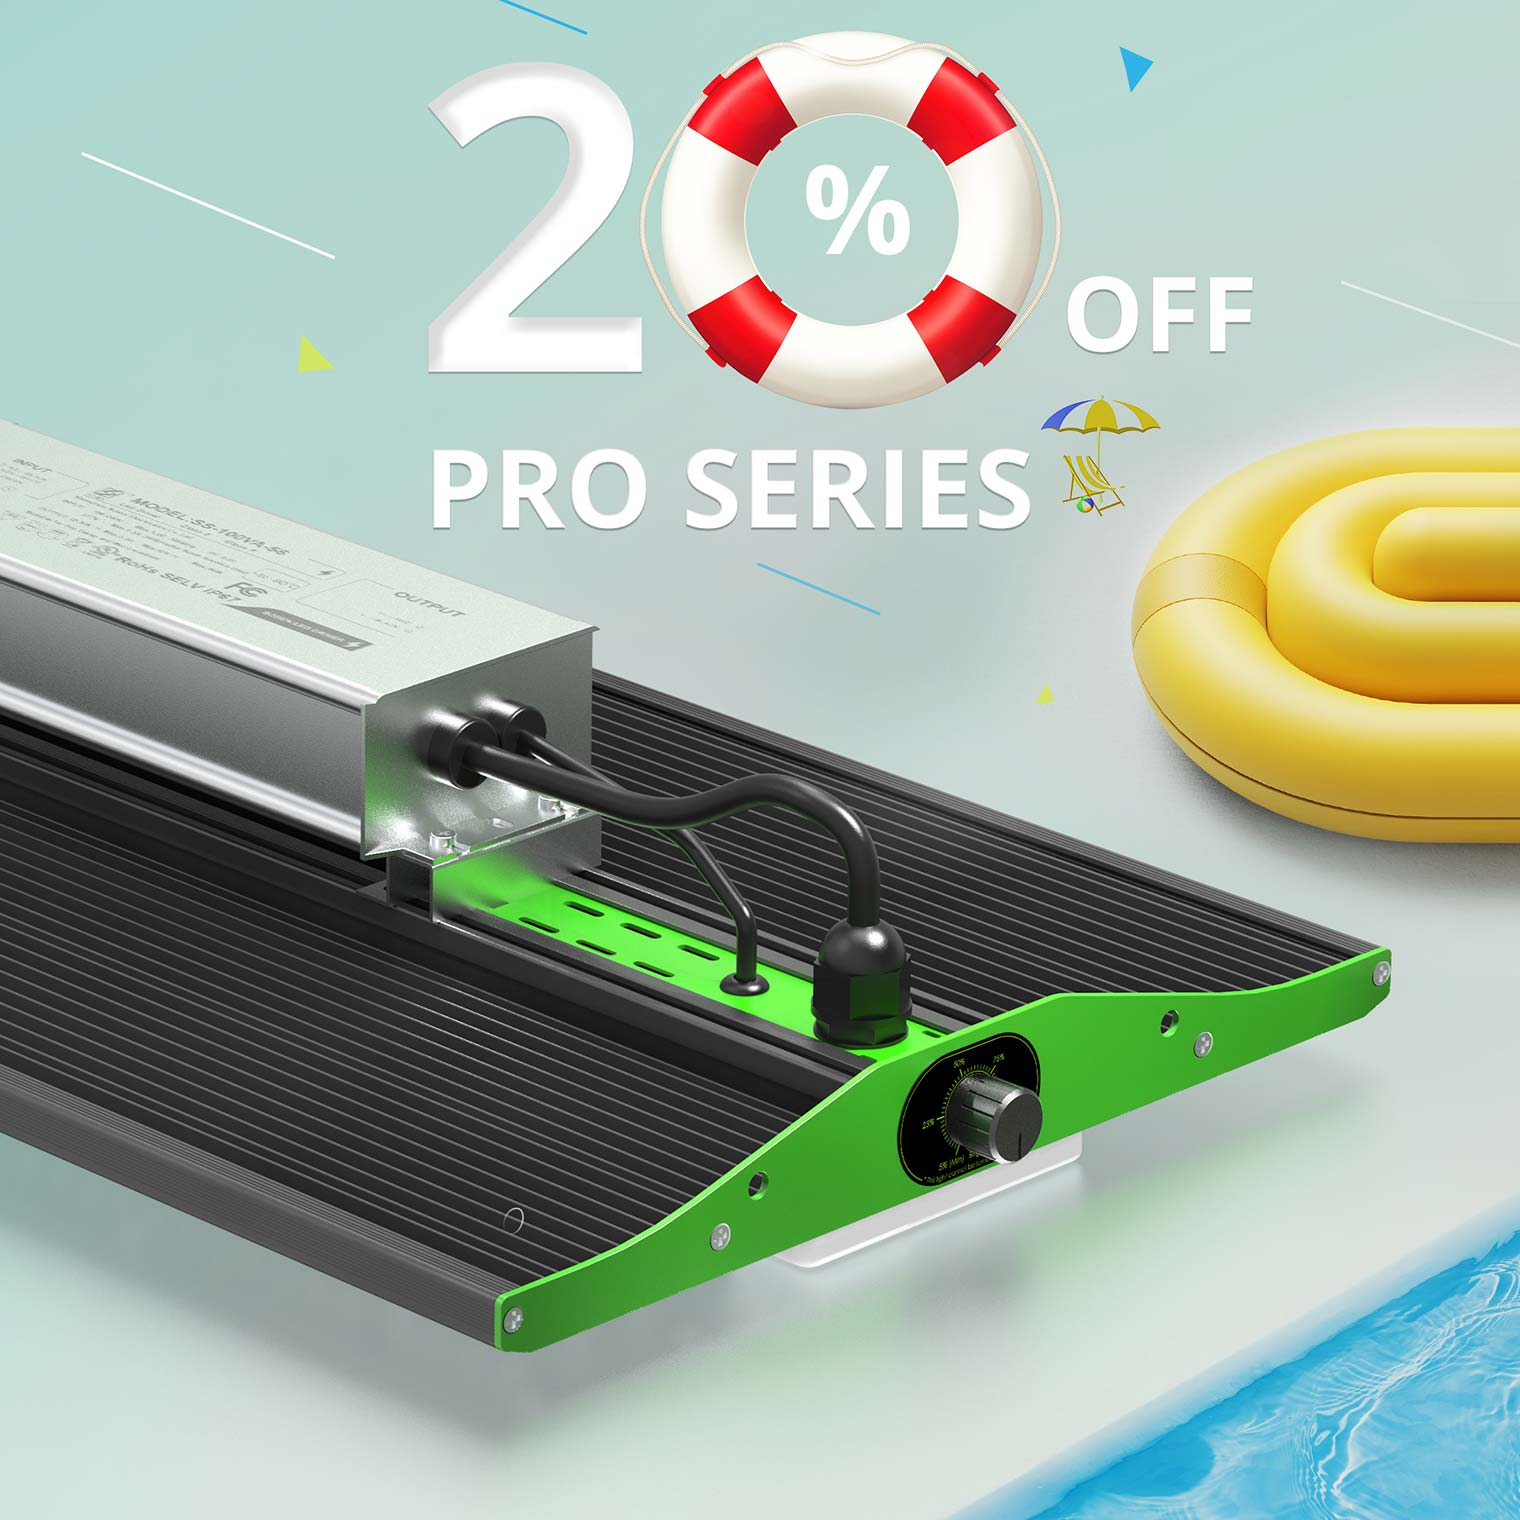 20% off pro series artwork, with rubber and water